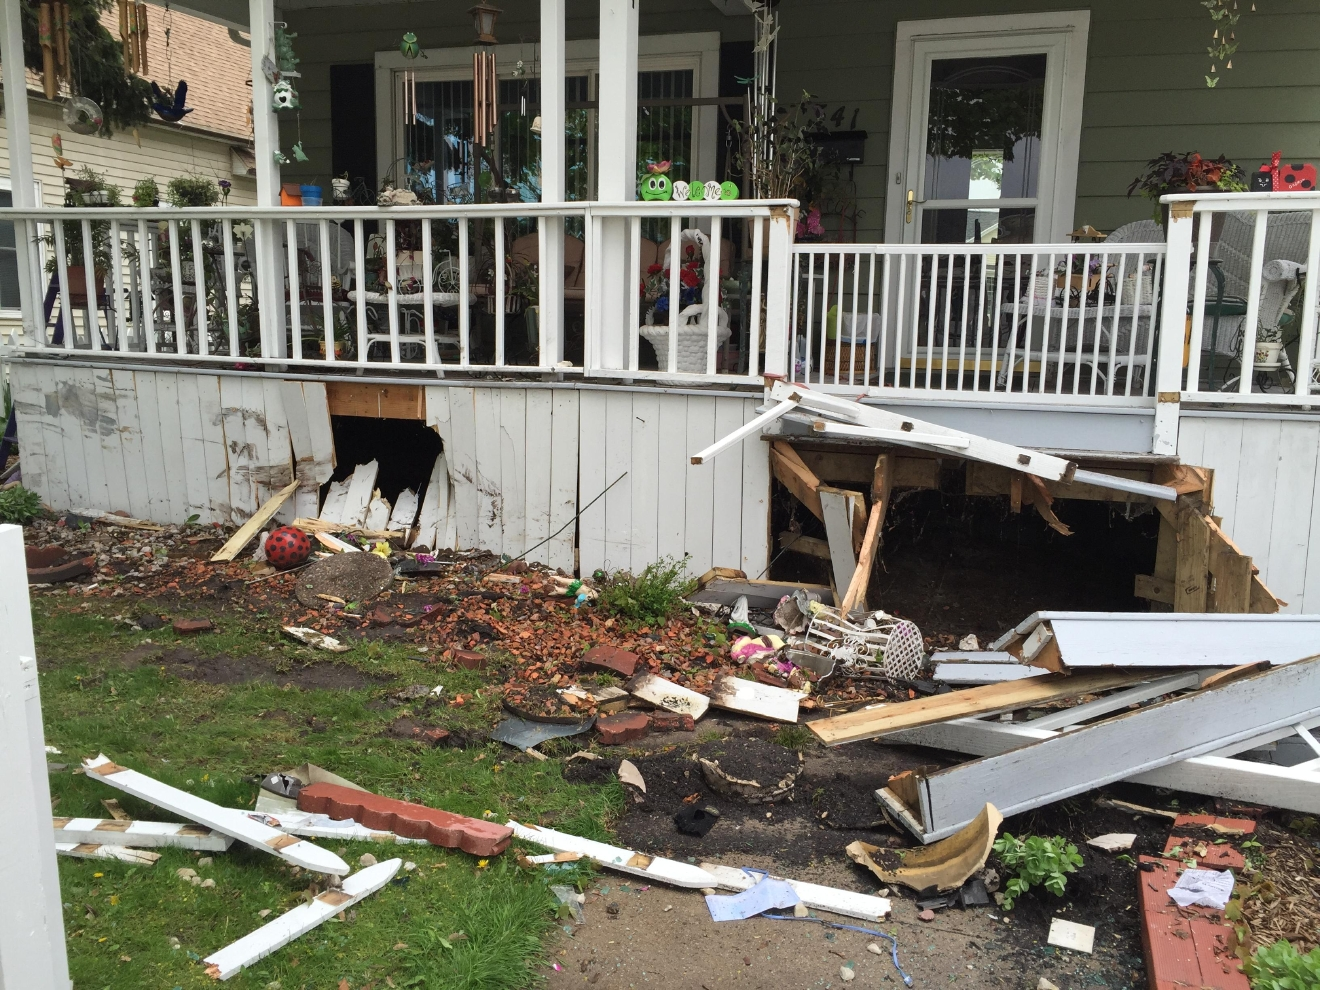 House of speed green bay - Damage To A House In The 300 Block Of N Ashland Ave In Green